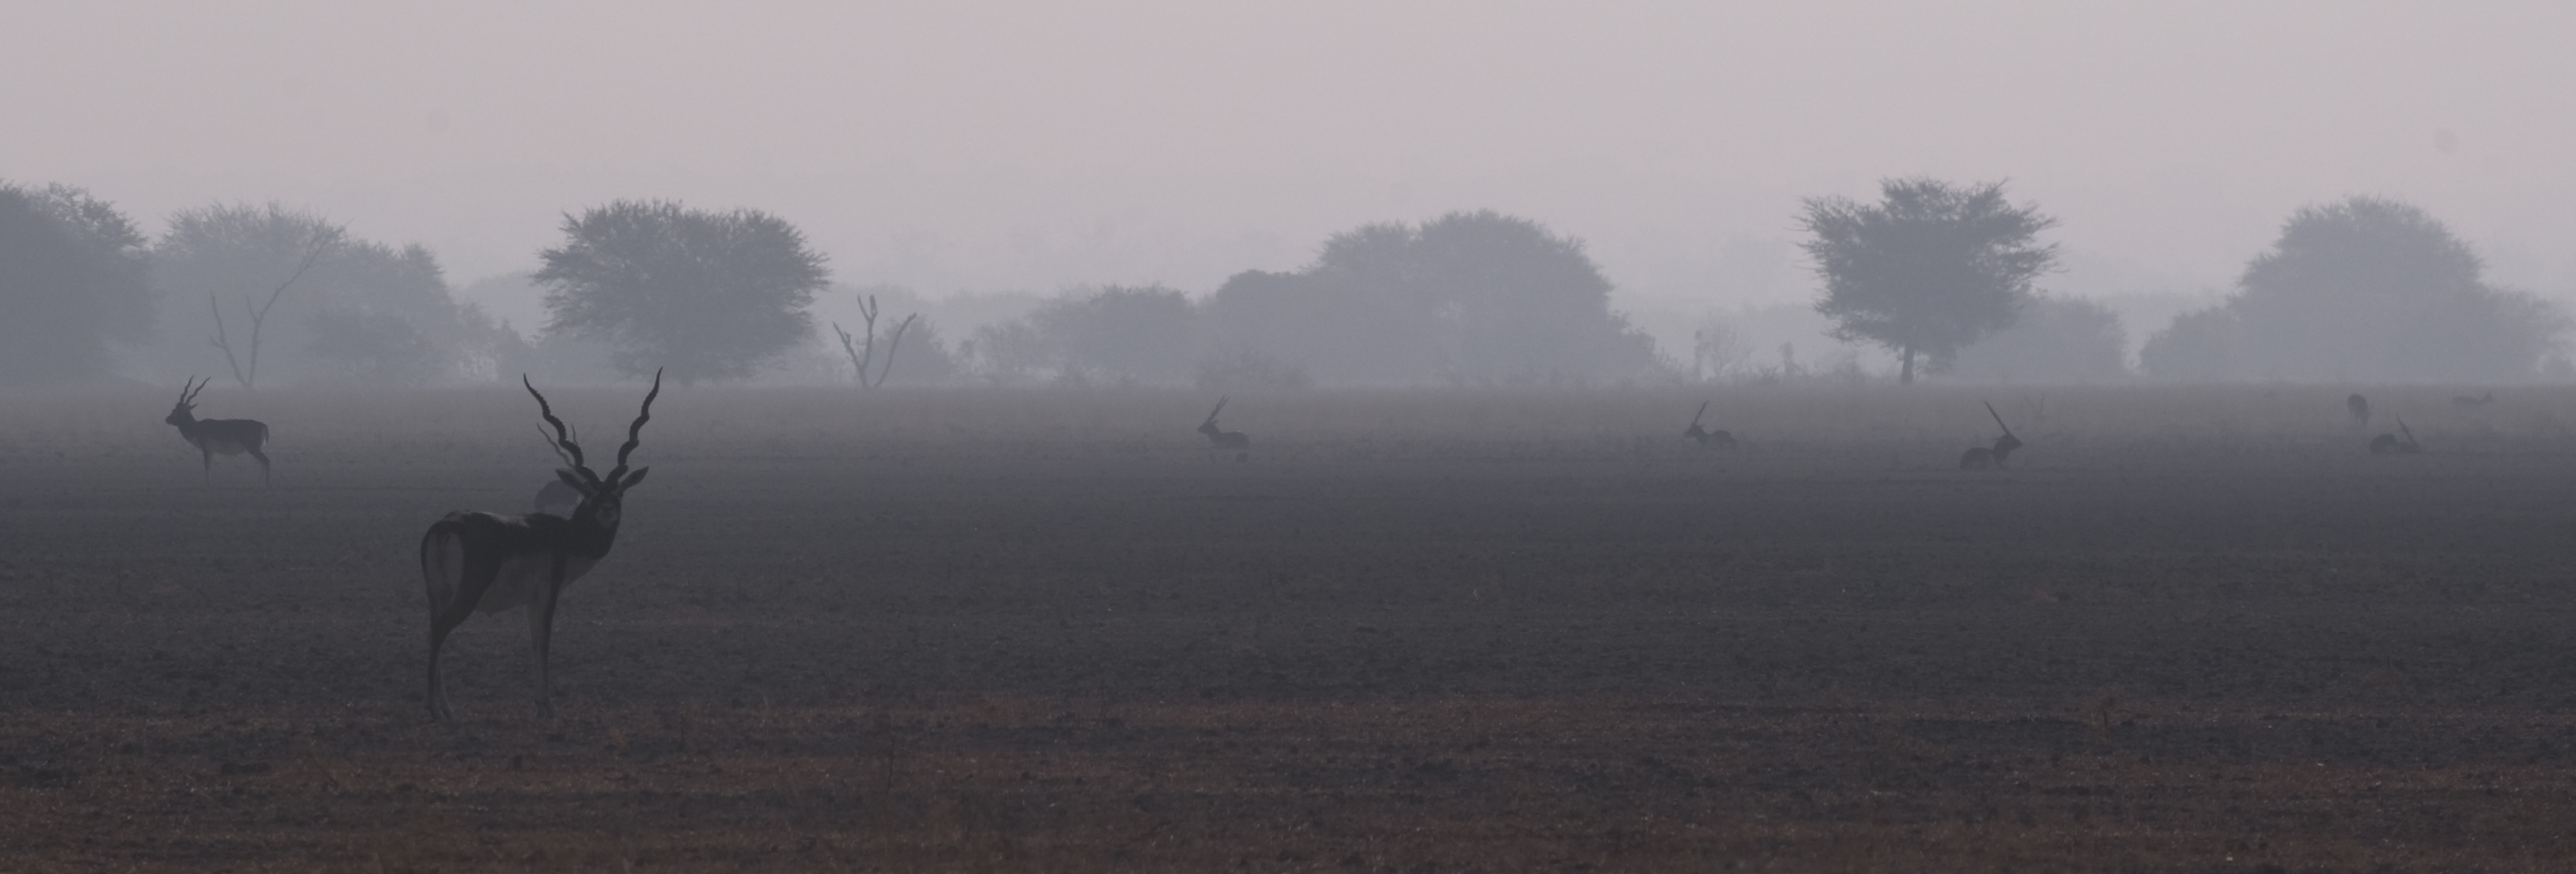 Declared a sanctuary in 1962,  the Tal Chhapar Wildlife Sanctuary is a vast, semi-arid grassland interspersed with very sparse vegetation. Photo: Dhritiman Mukherjee  The blackbuck is easily identified by its magnificent twisted, spiral V-shaped horns. Cover Photo: Dhritiman Mukherjee